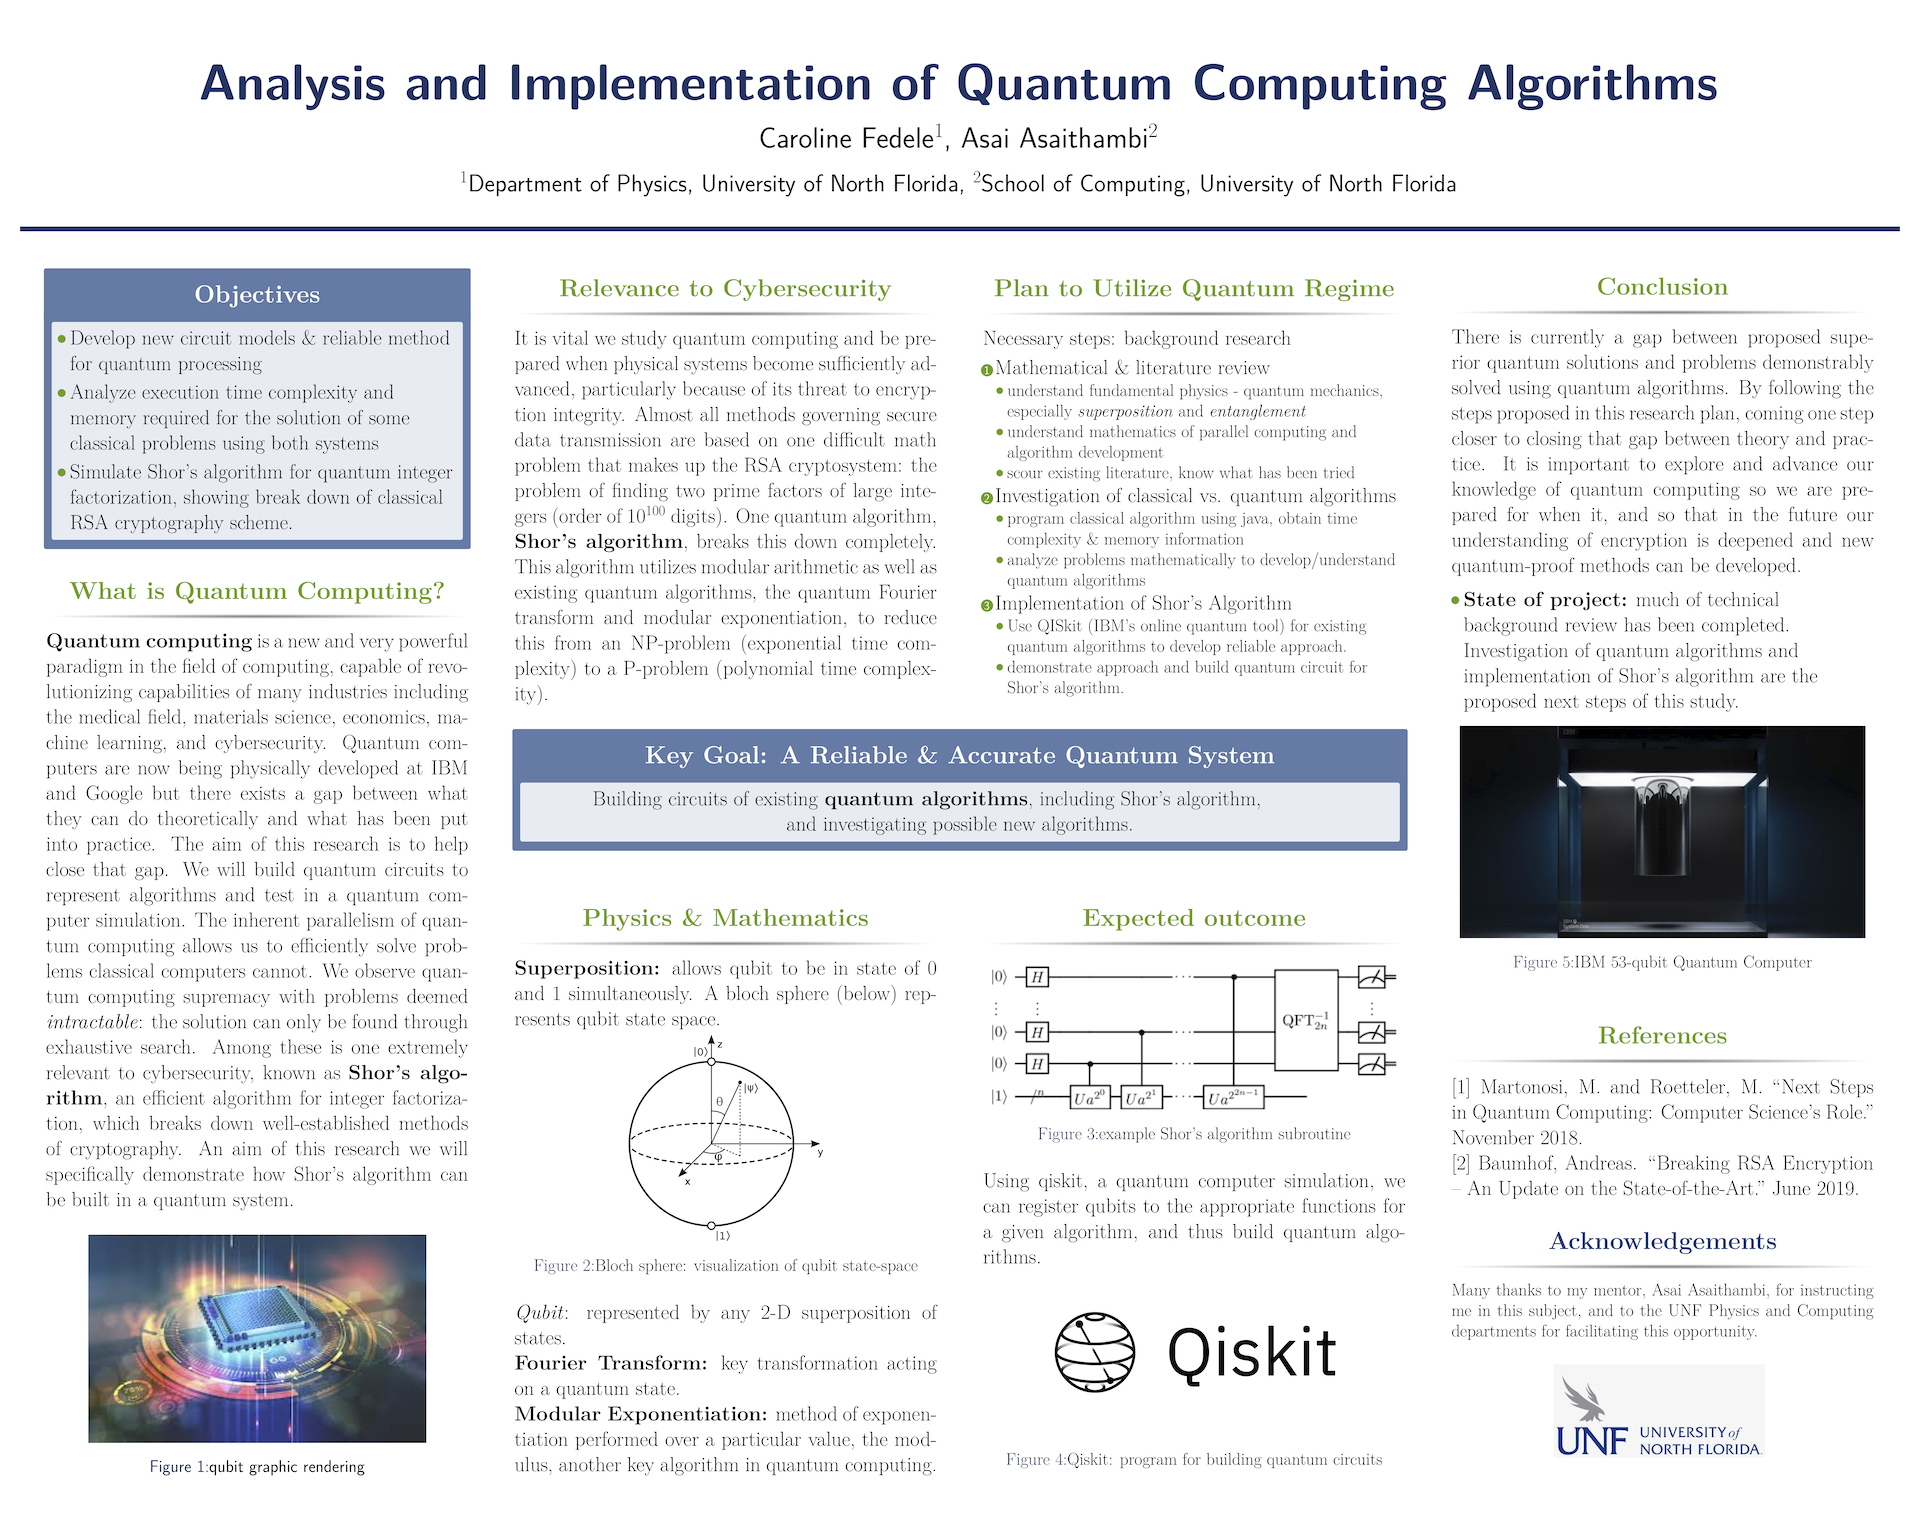 Analysis and Implementation of Quantum Computing Algorithms poster